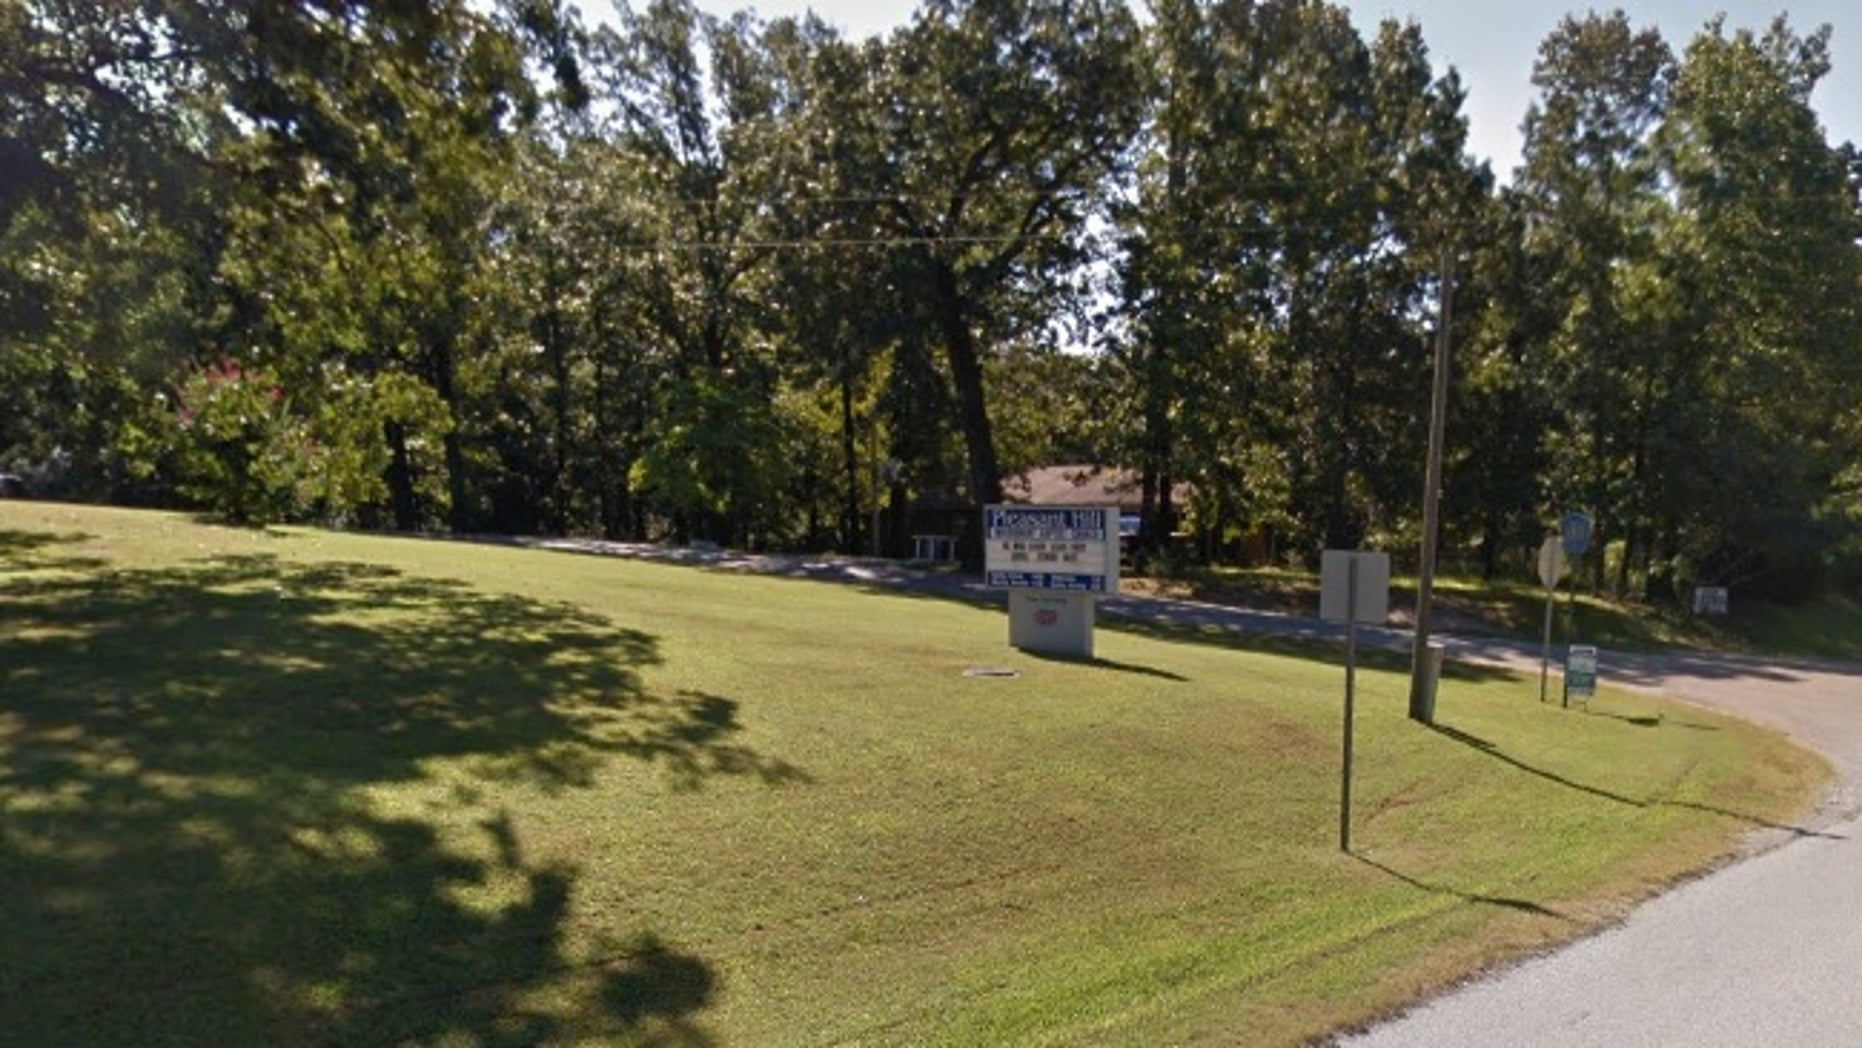 The cemetery was located near Pleasant Hill Missionary Baptist Church in Arkansas.